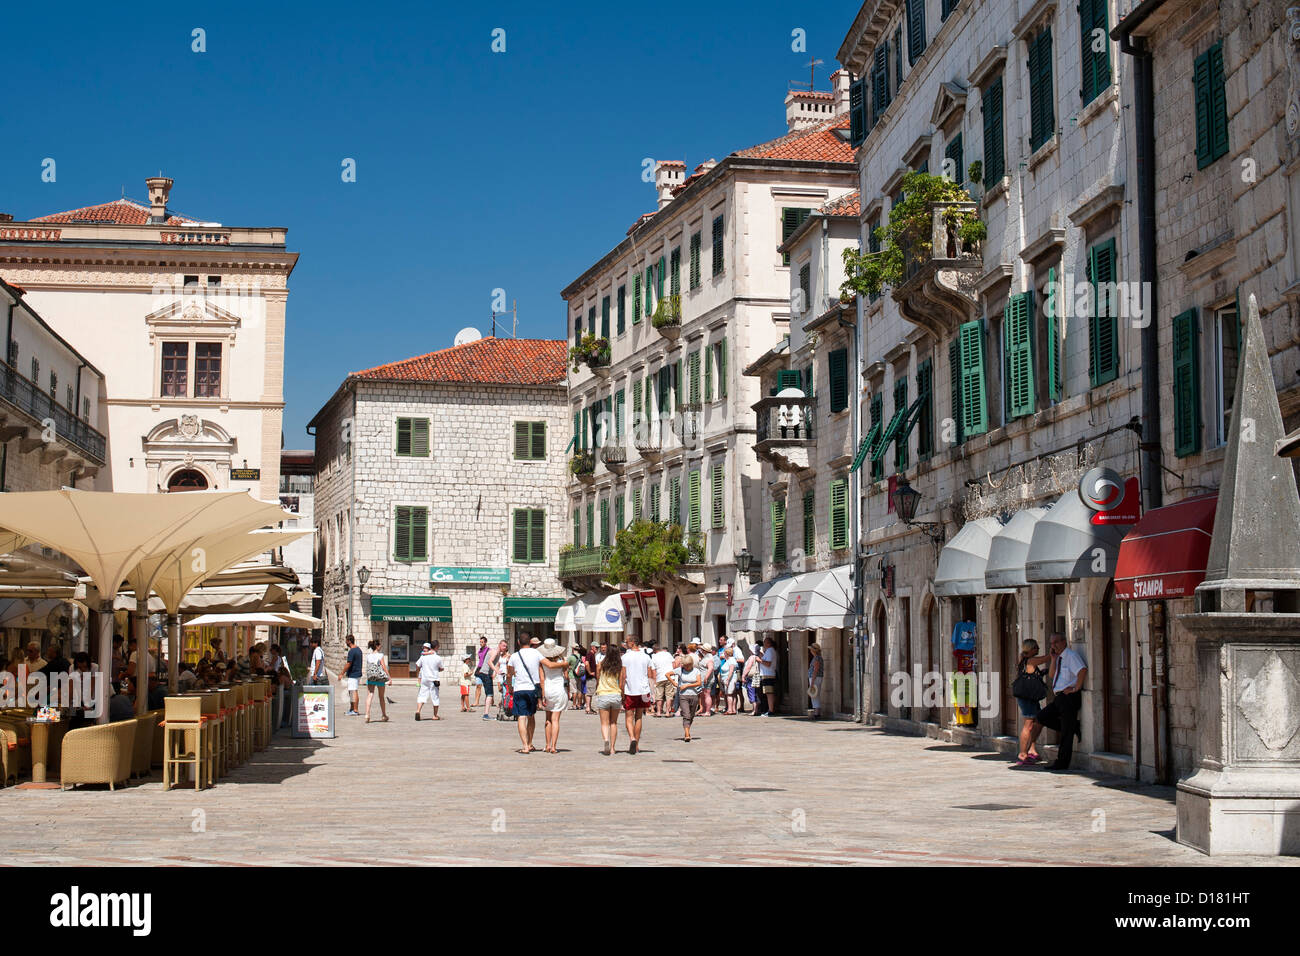 The old town of Kotor in Montenegro. - Stock Image